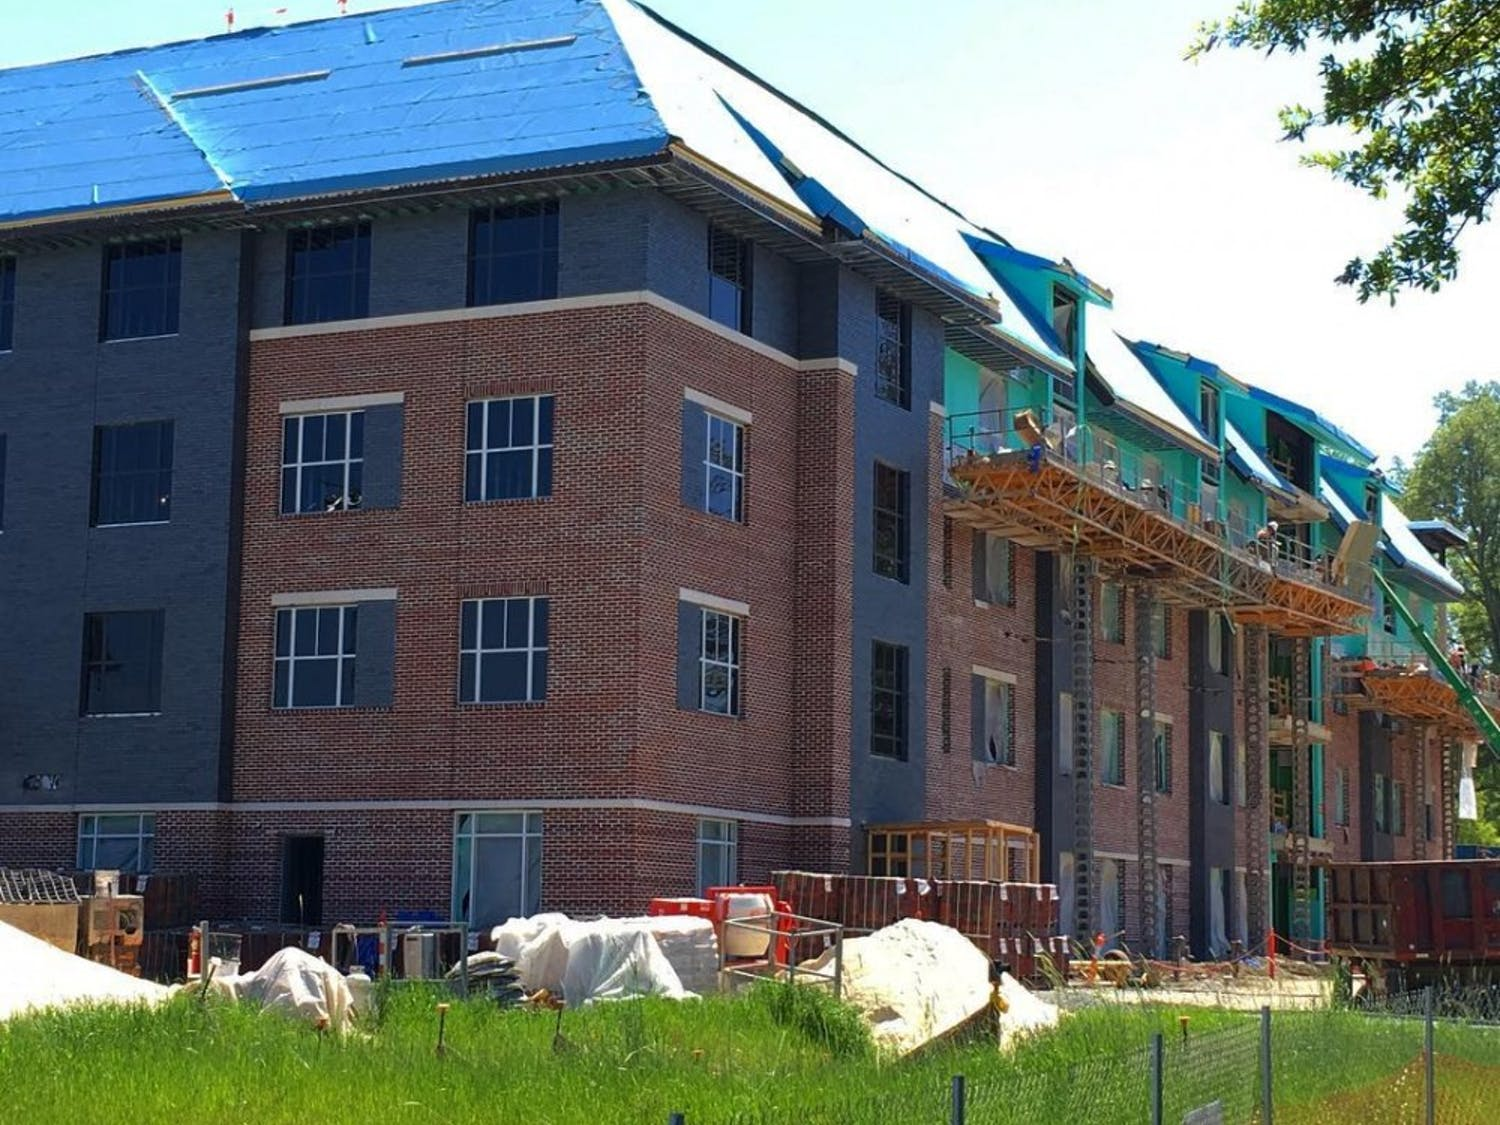 The new residence hall on East Campus will be completed in January 2018.